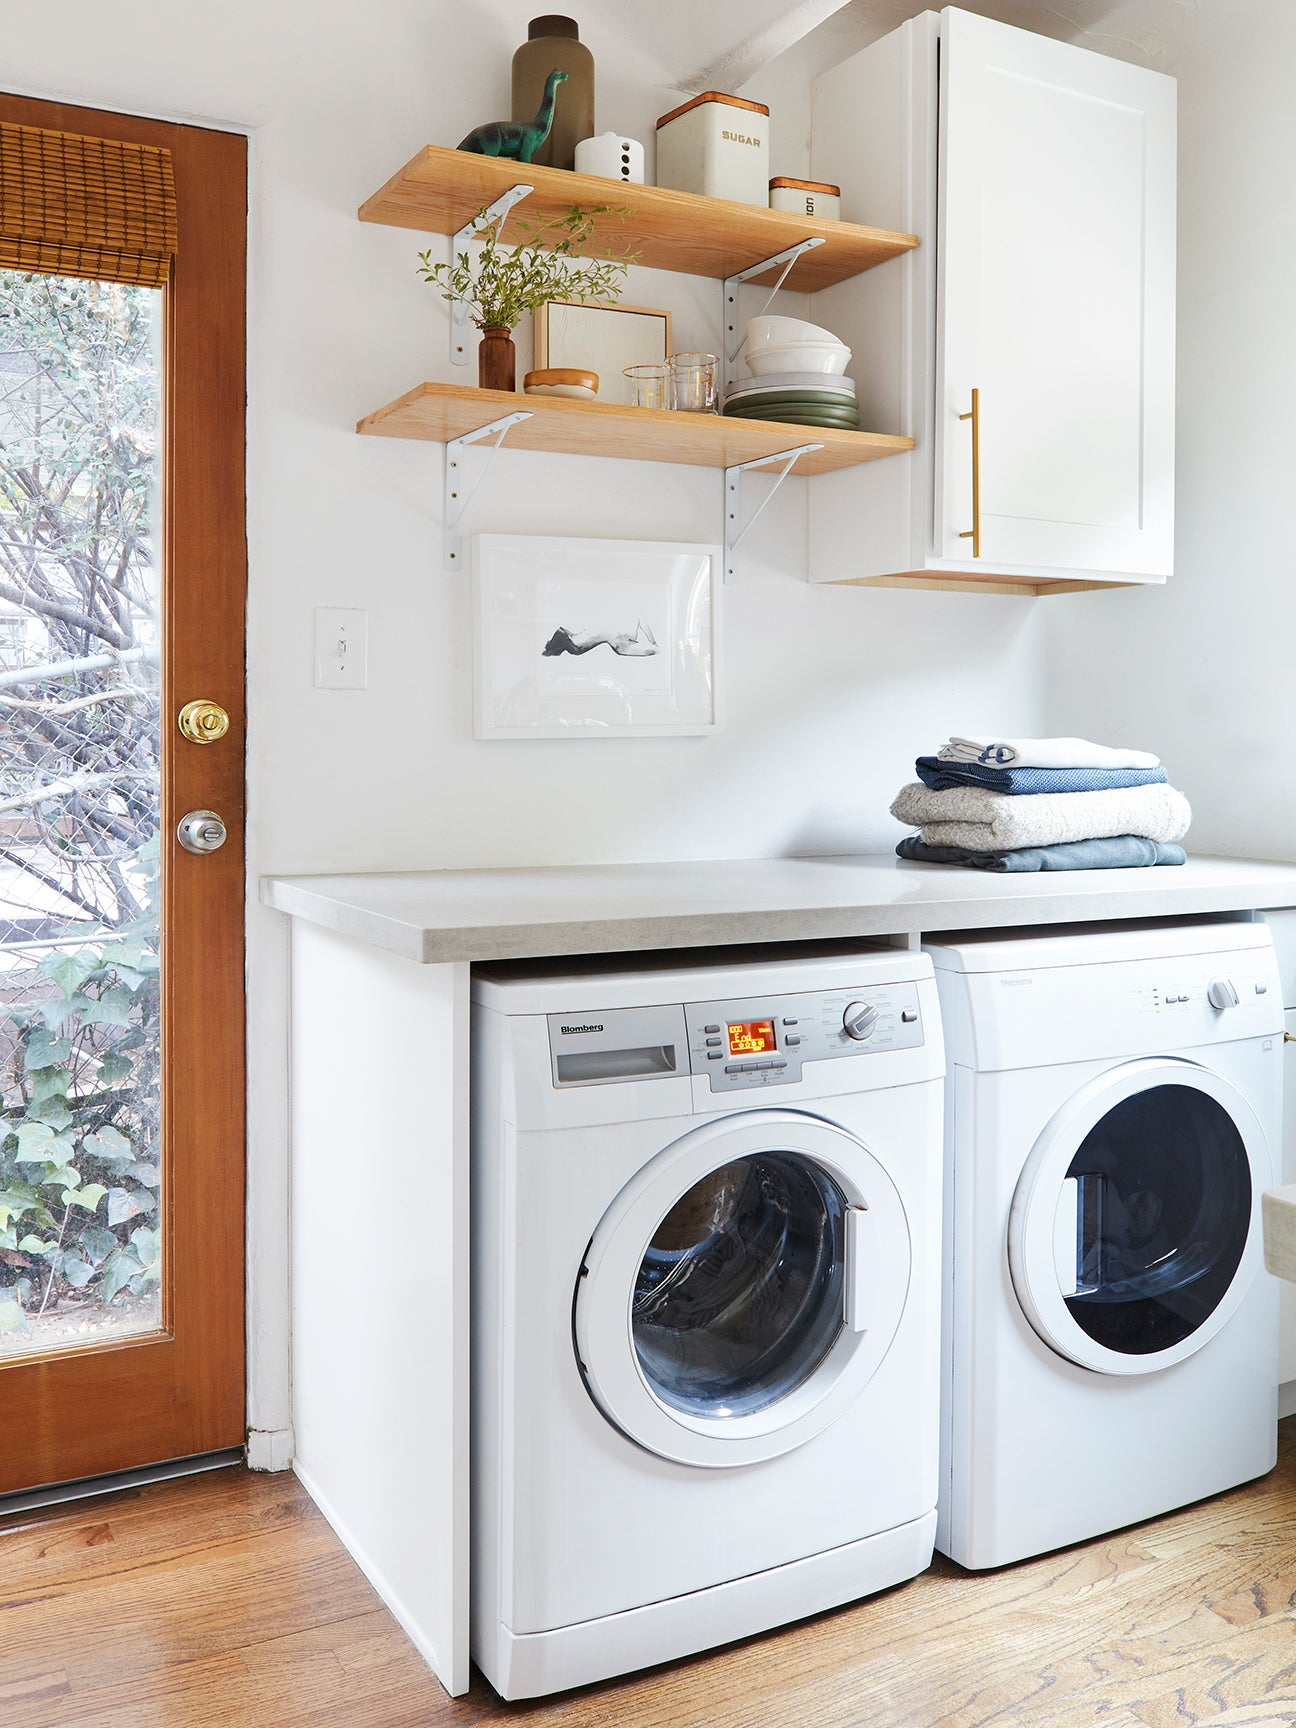 affordable-Sustainable-laundry-tool-domino